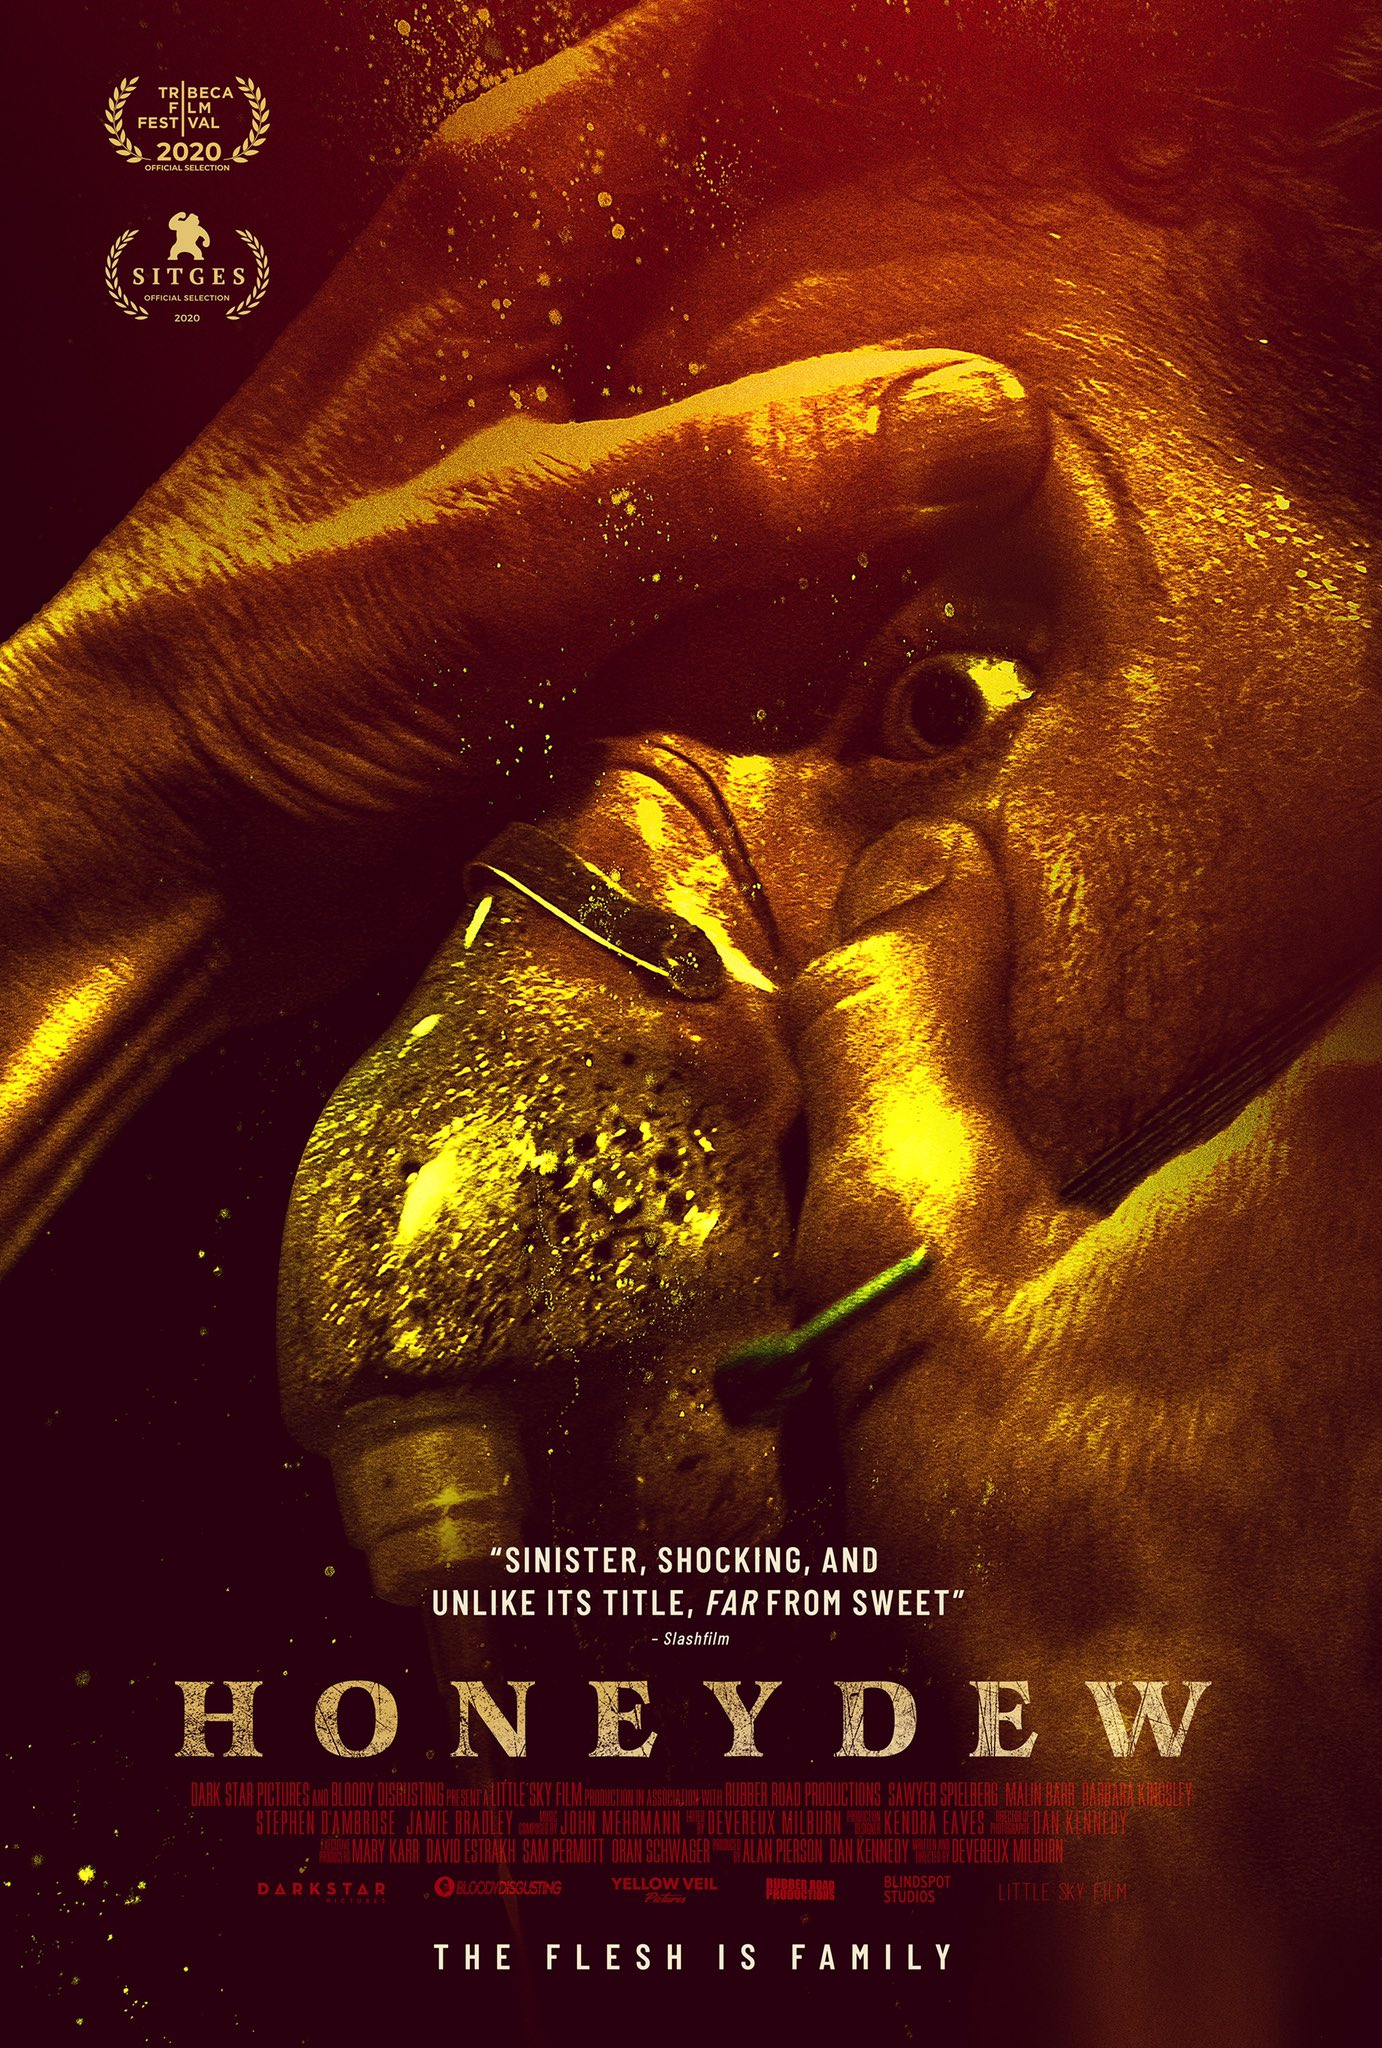 """Chris on Twitter: """"Thrilled to share our new poster for the truly stomach  churning horror film, Honeydew. https://t.co/RbC0VDDqum"""" / Twitter"""